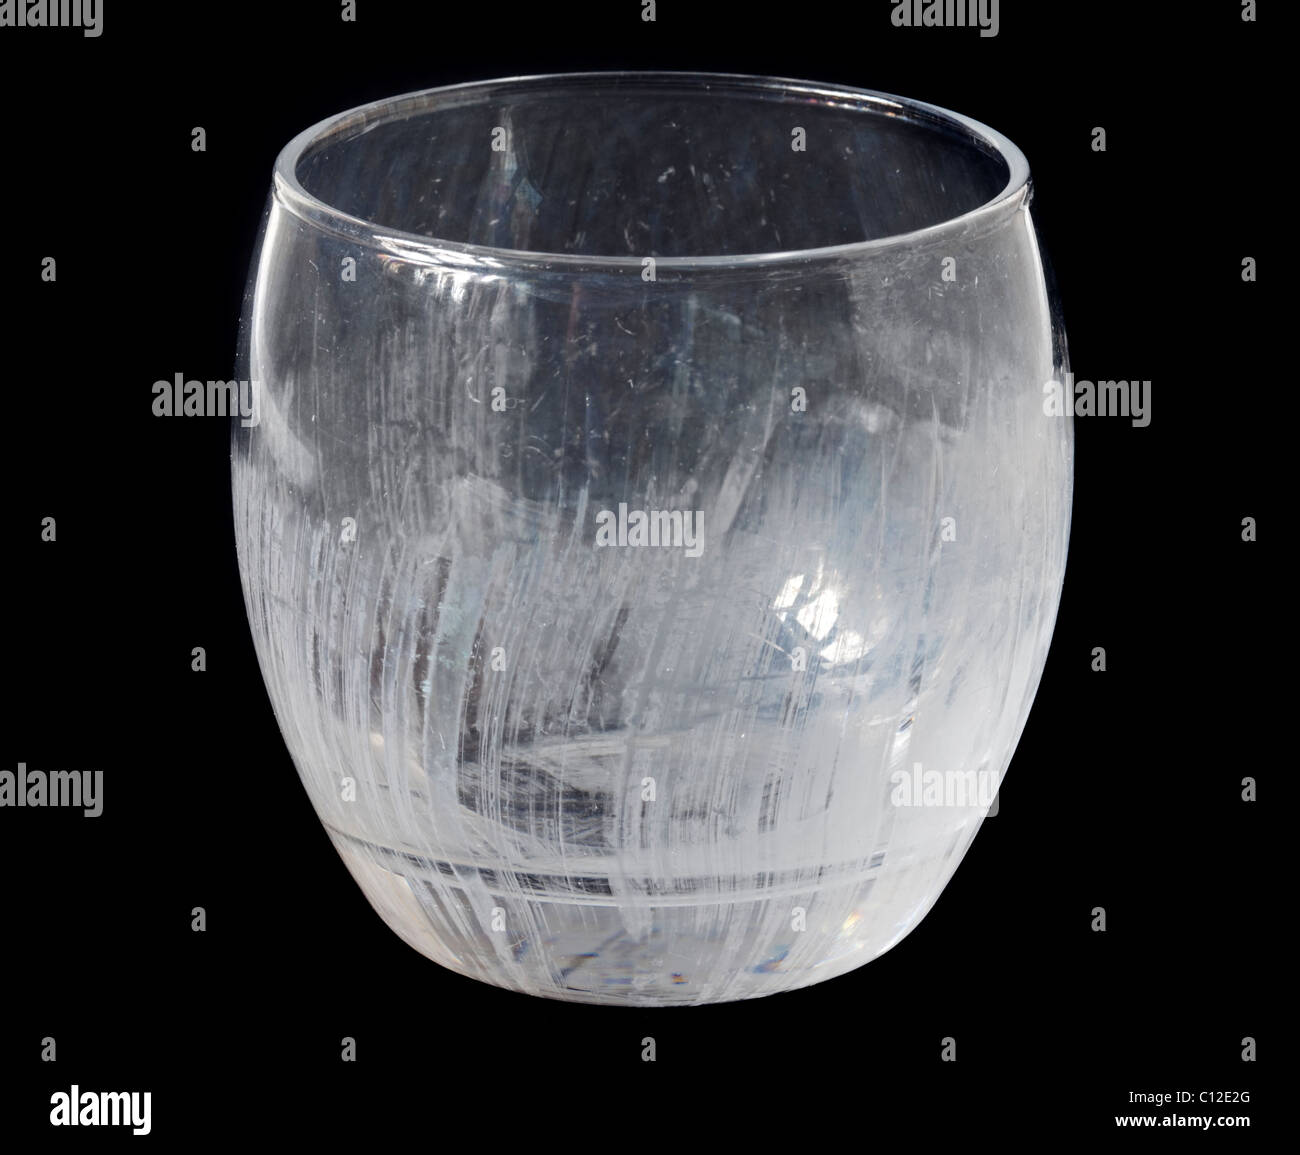 Glass Tumbler showing limescale/etching from frequent dishwashing - Stock Image